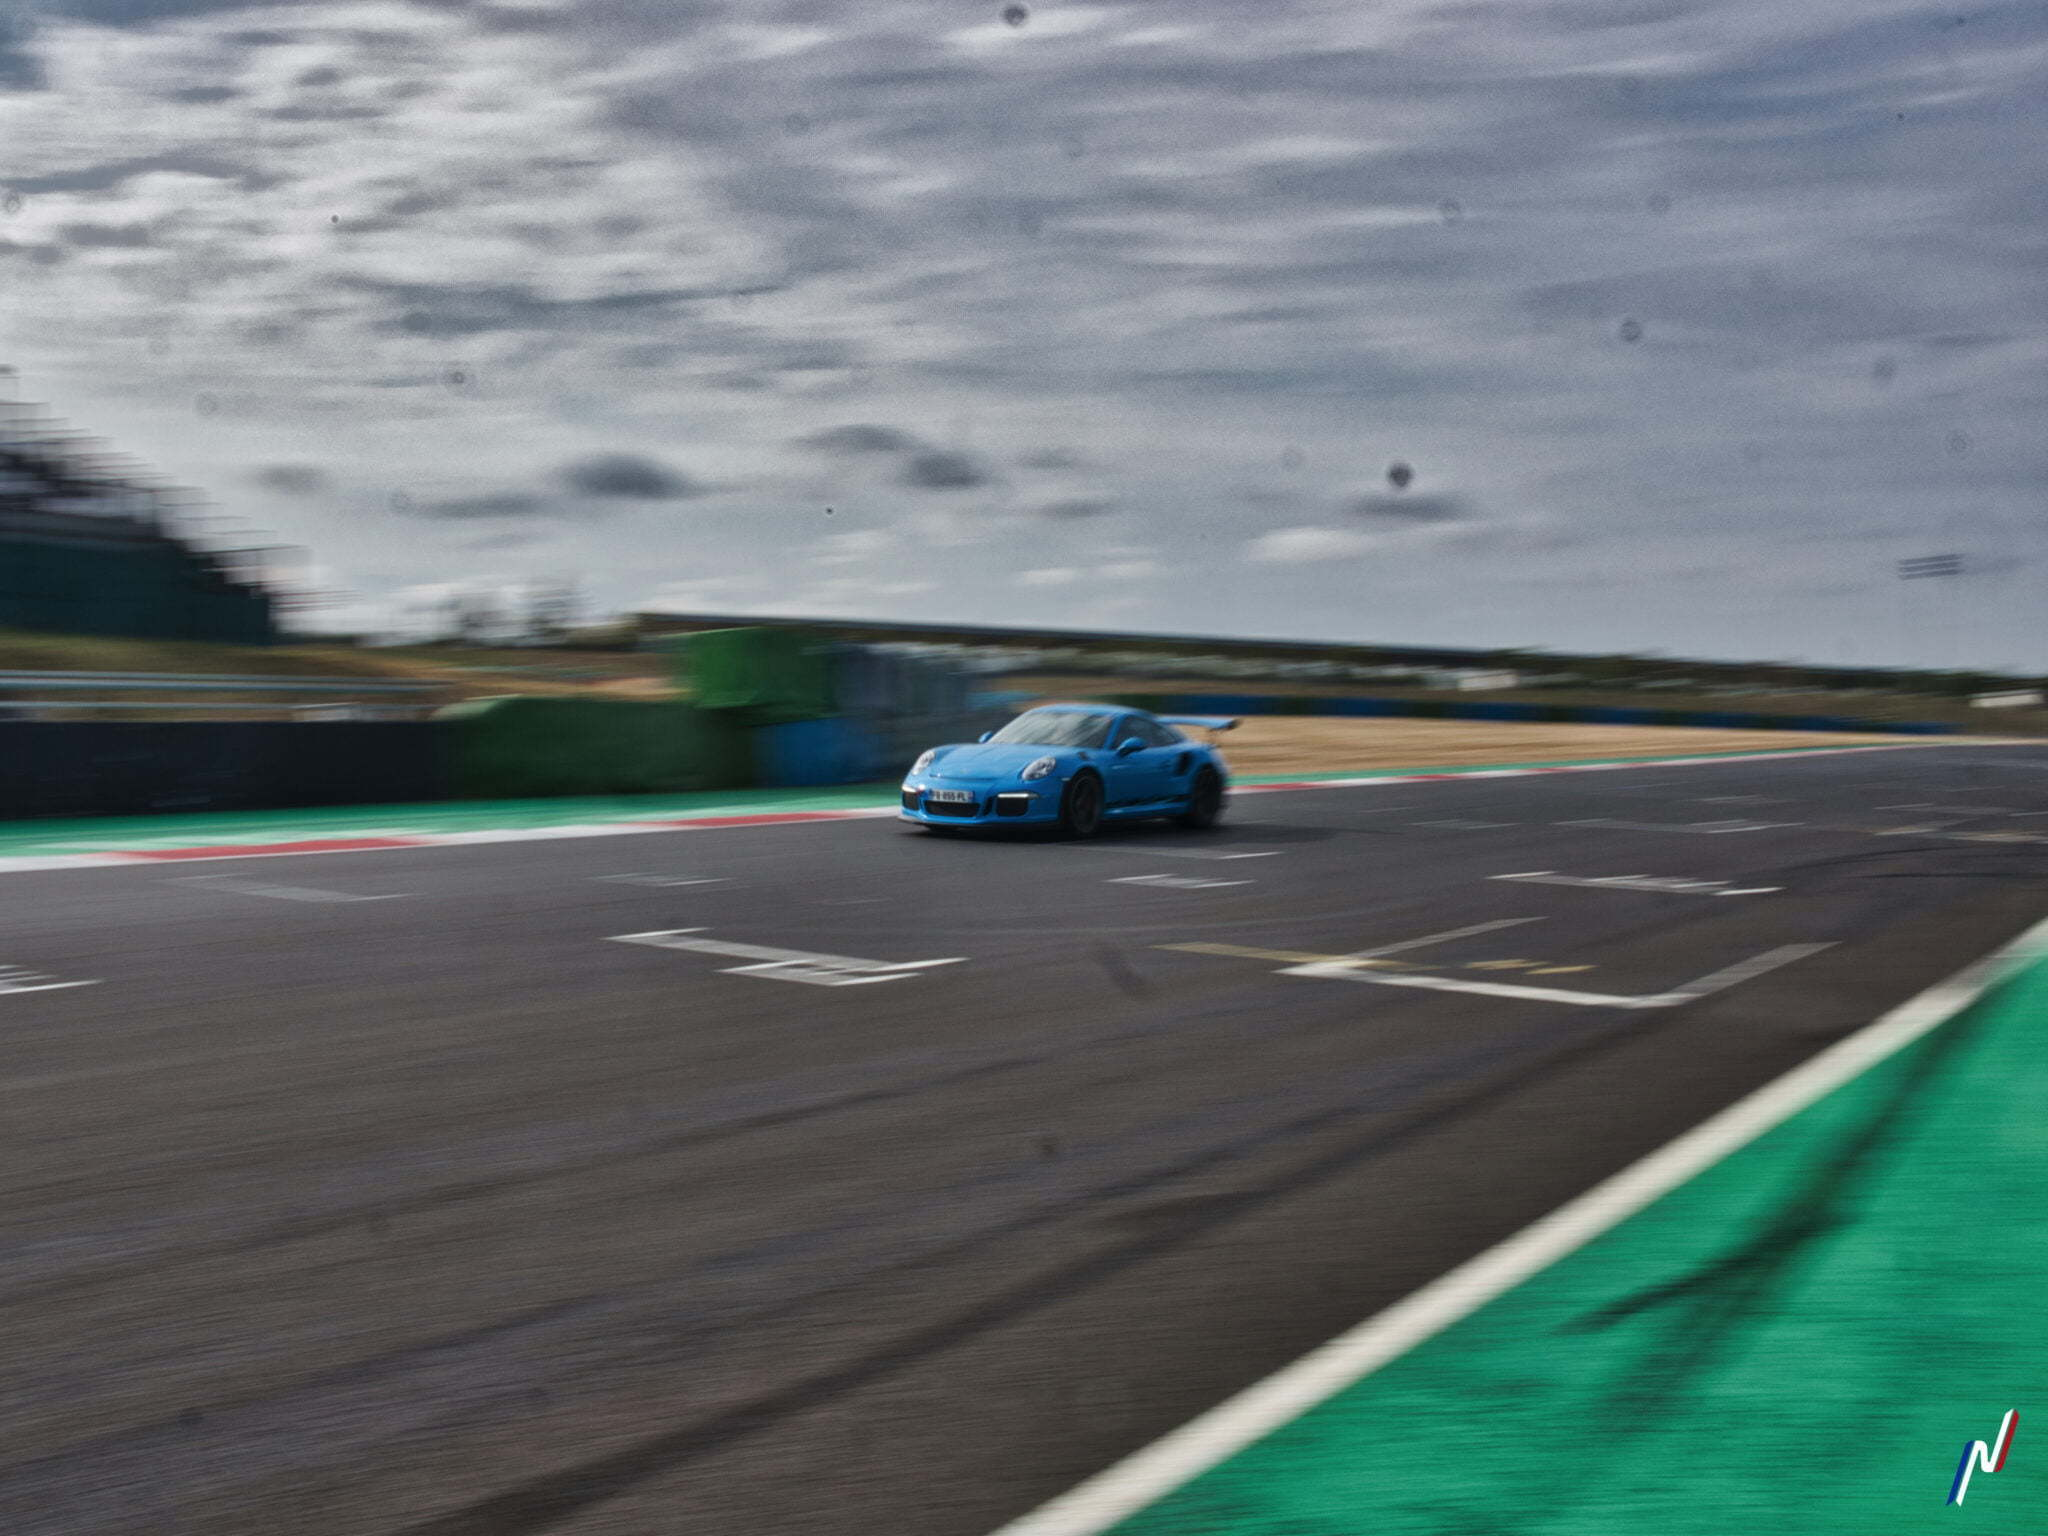 Motorsport Mag Track Day Magny Cours Alpine A110  P1100892 Alpine Planet | Track Day Motorsport 2020 : Magny-Cours, des Alpine et du fun !